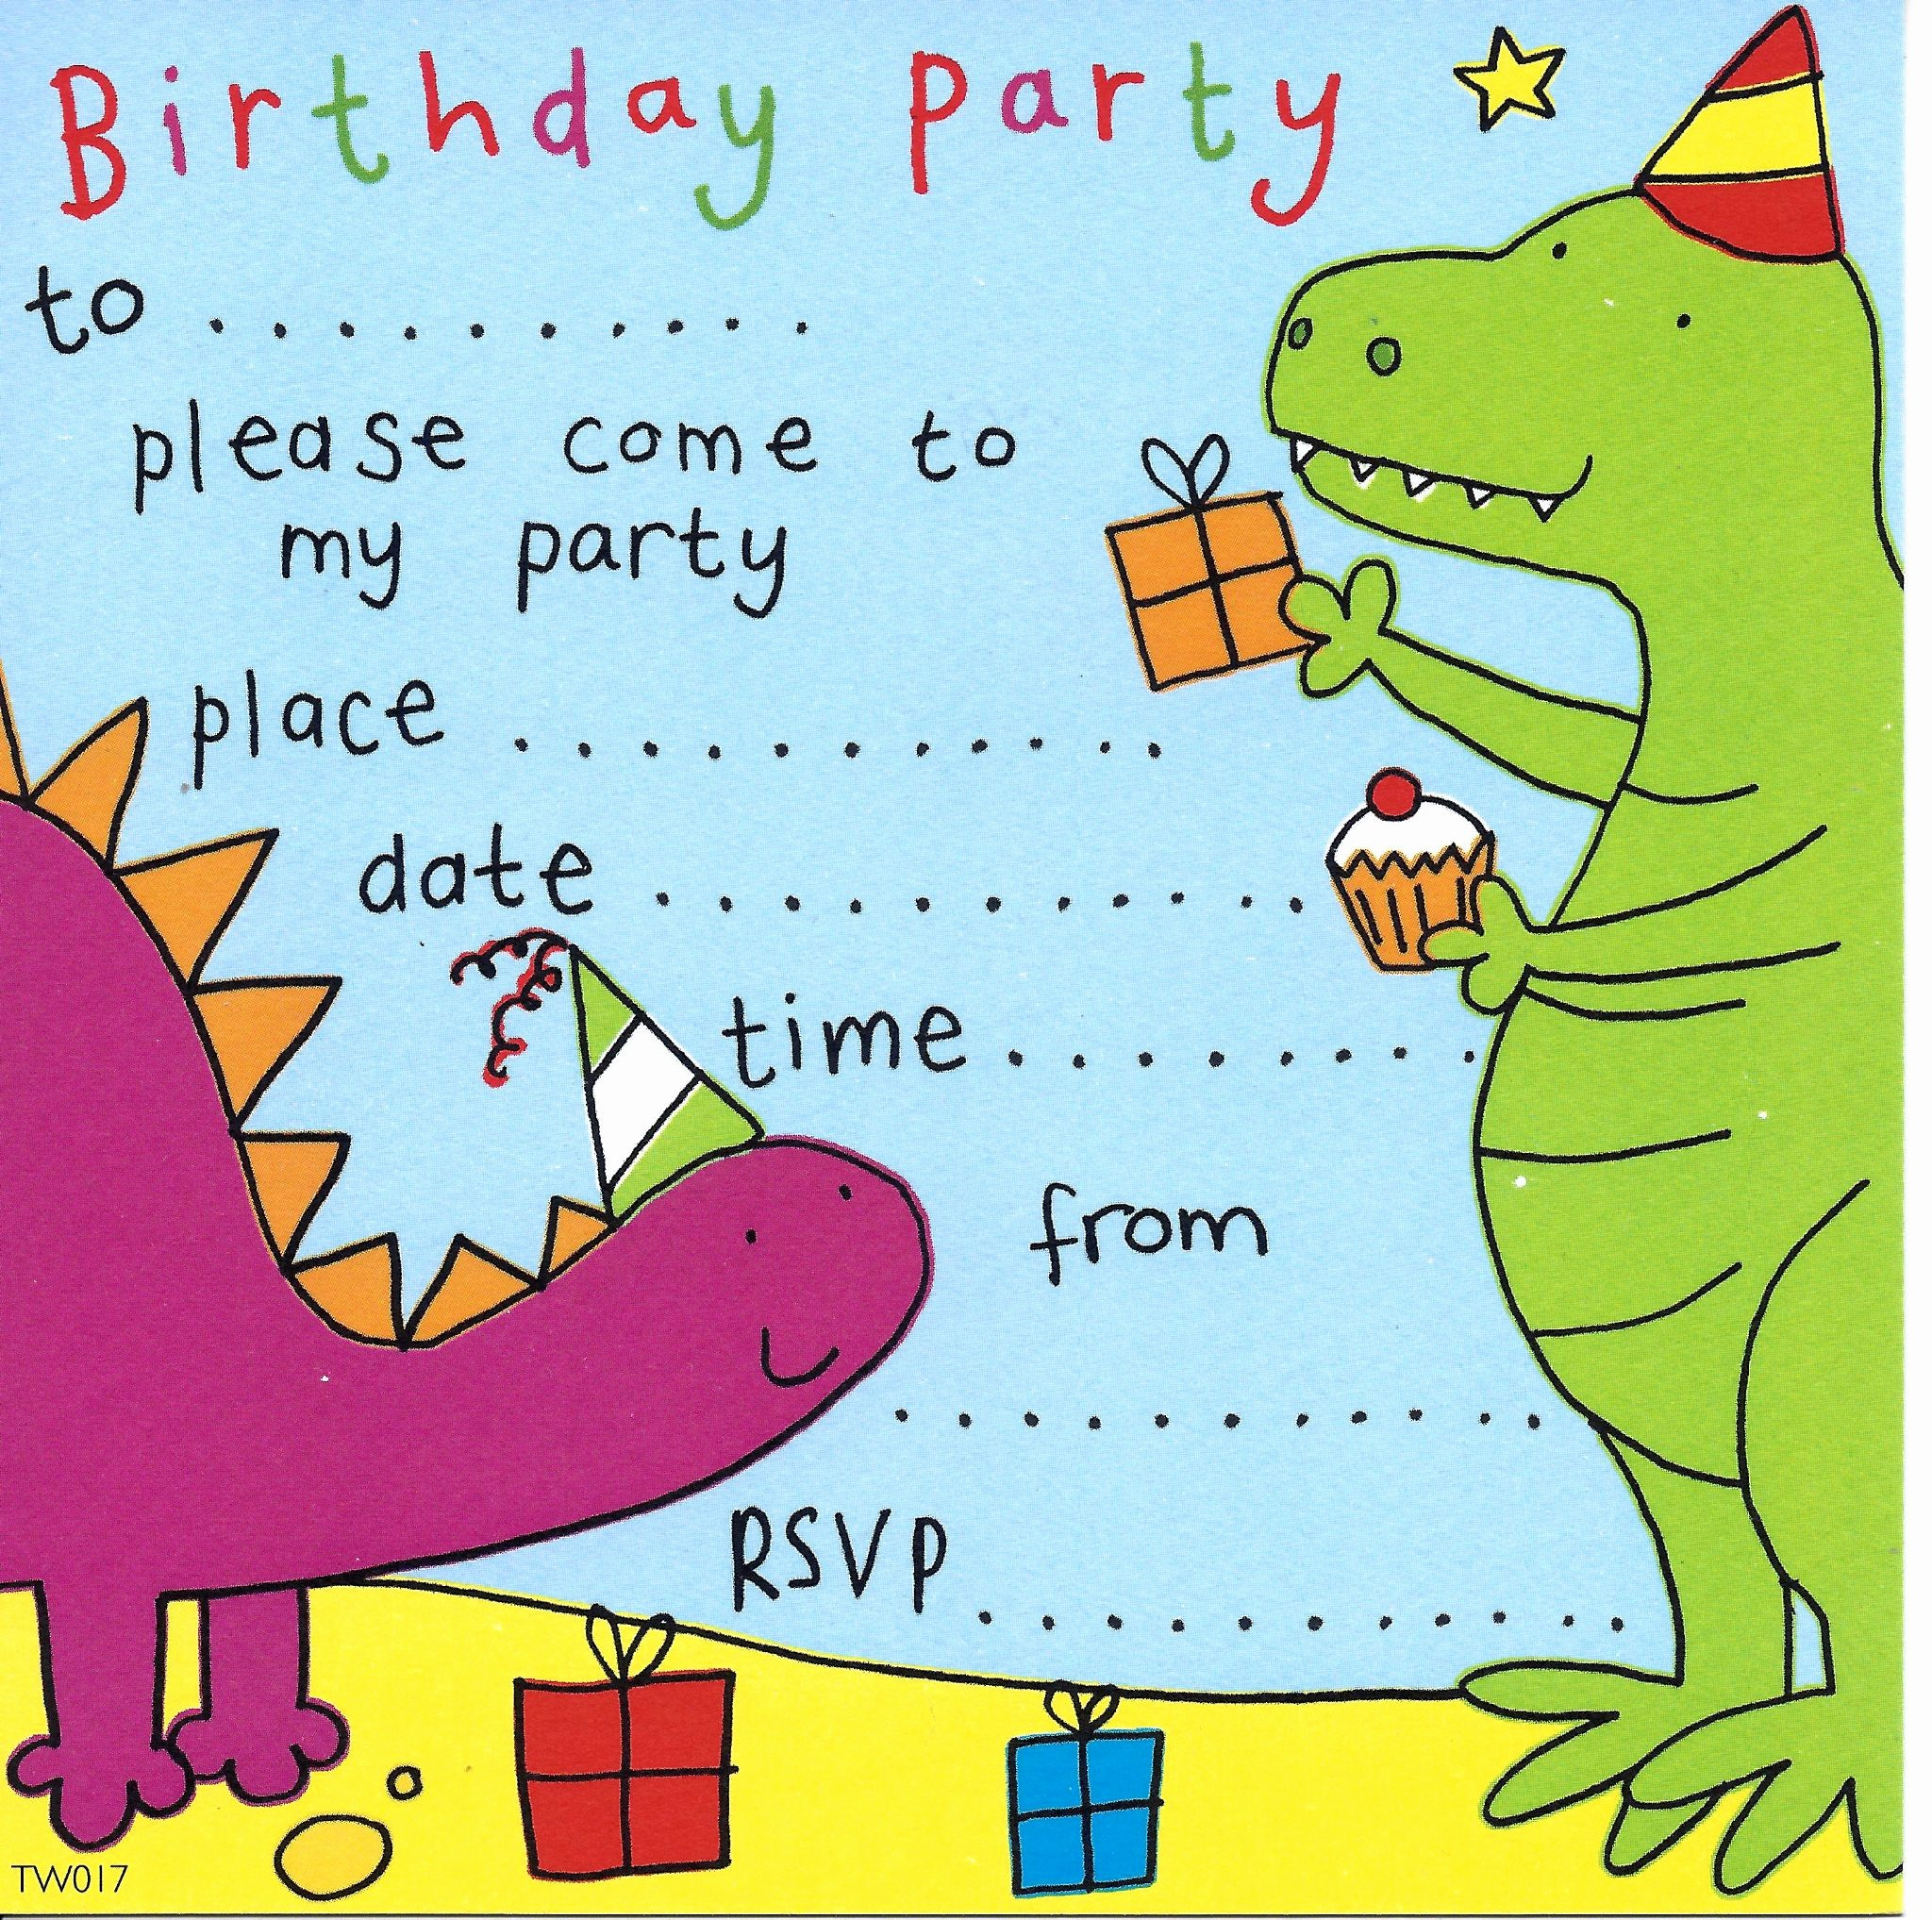 Kids Birthday Party Invites Templates Elegant Party Invitations Birthday Party Invitations Kids Party